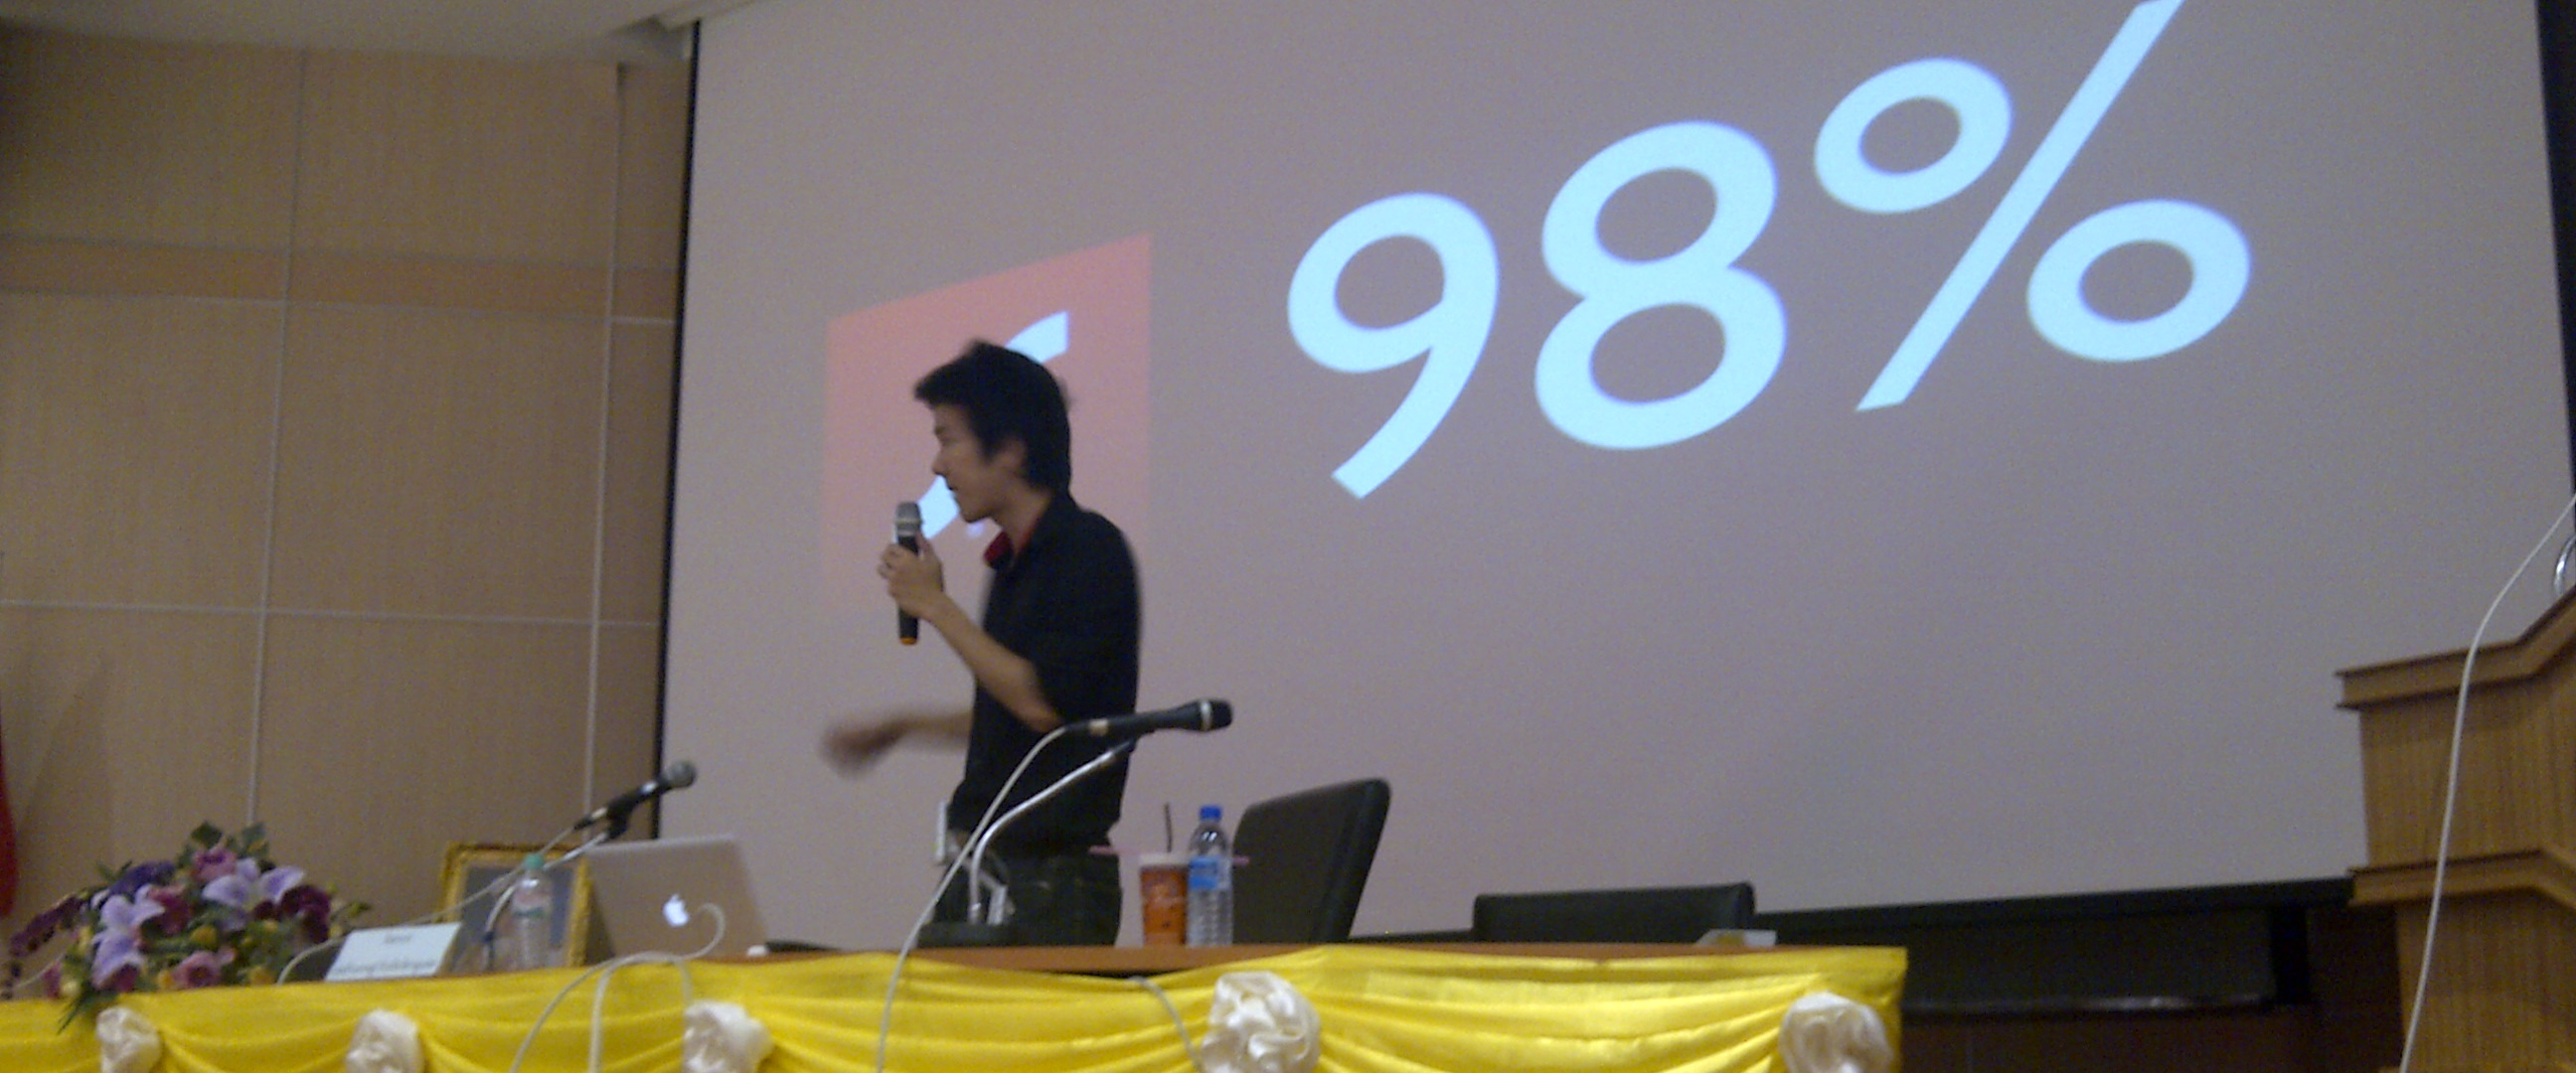 Teerasej is speaking about adobe flash platform - multi-screen at pibulsongkram rajaphat university 2011